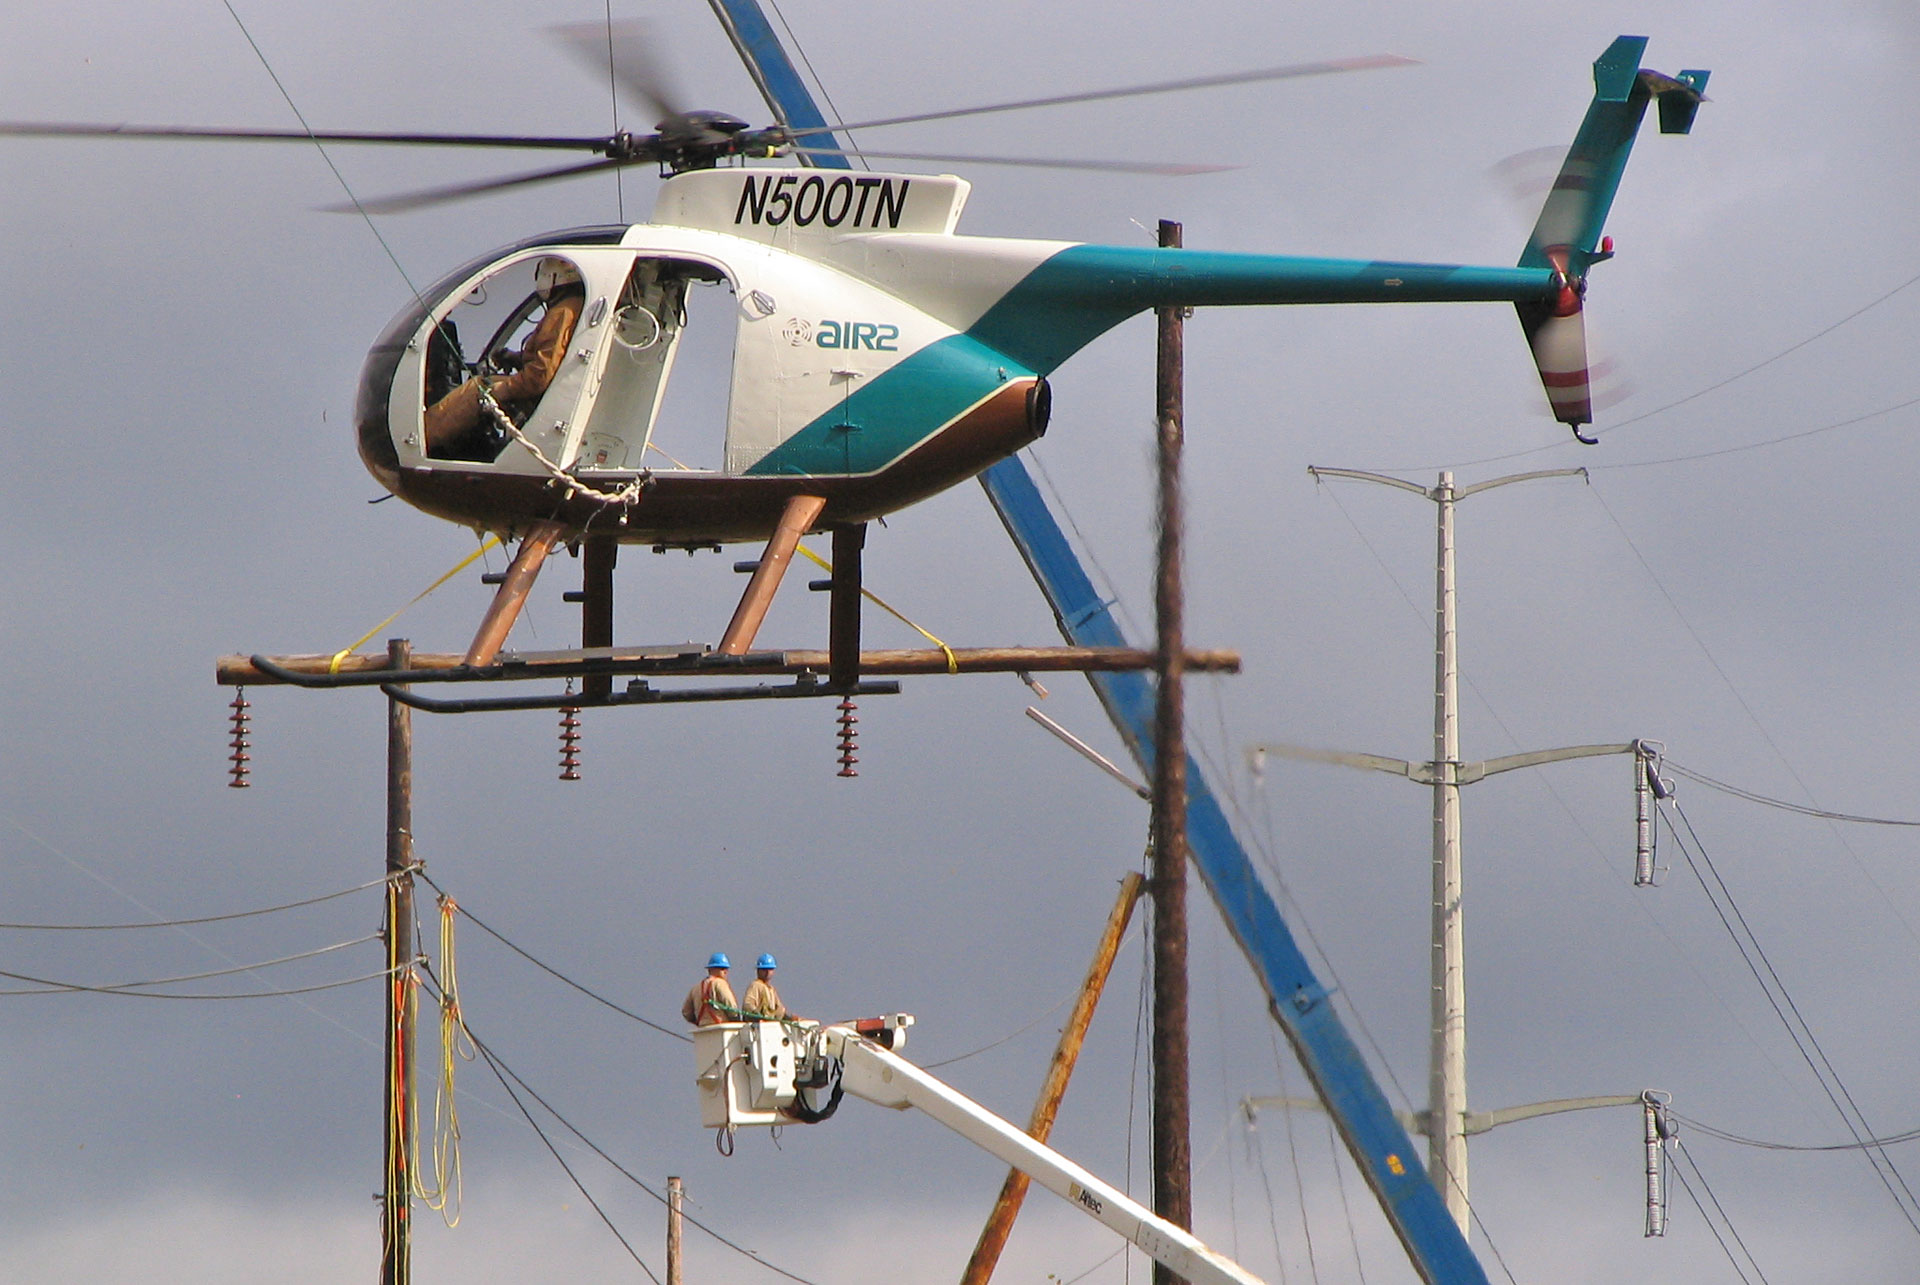 Air2 - Helicopter-Assisted Utility Construction and Maintenance